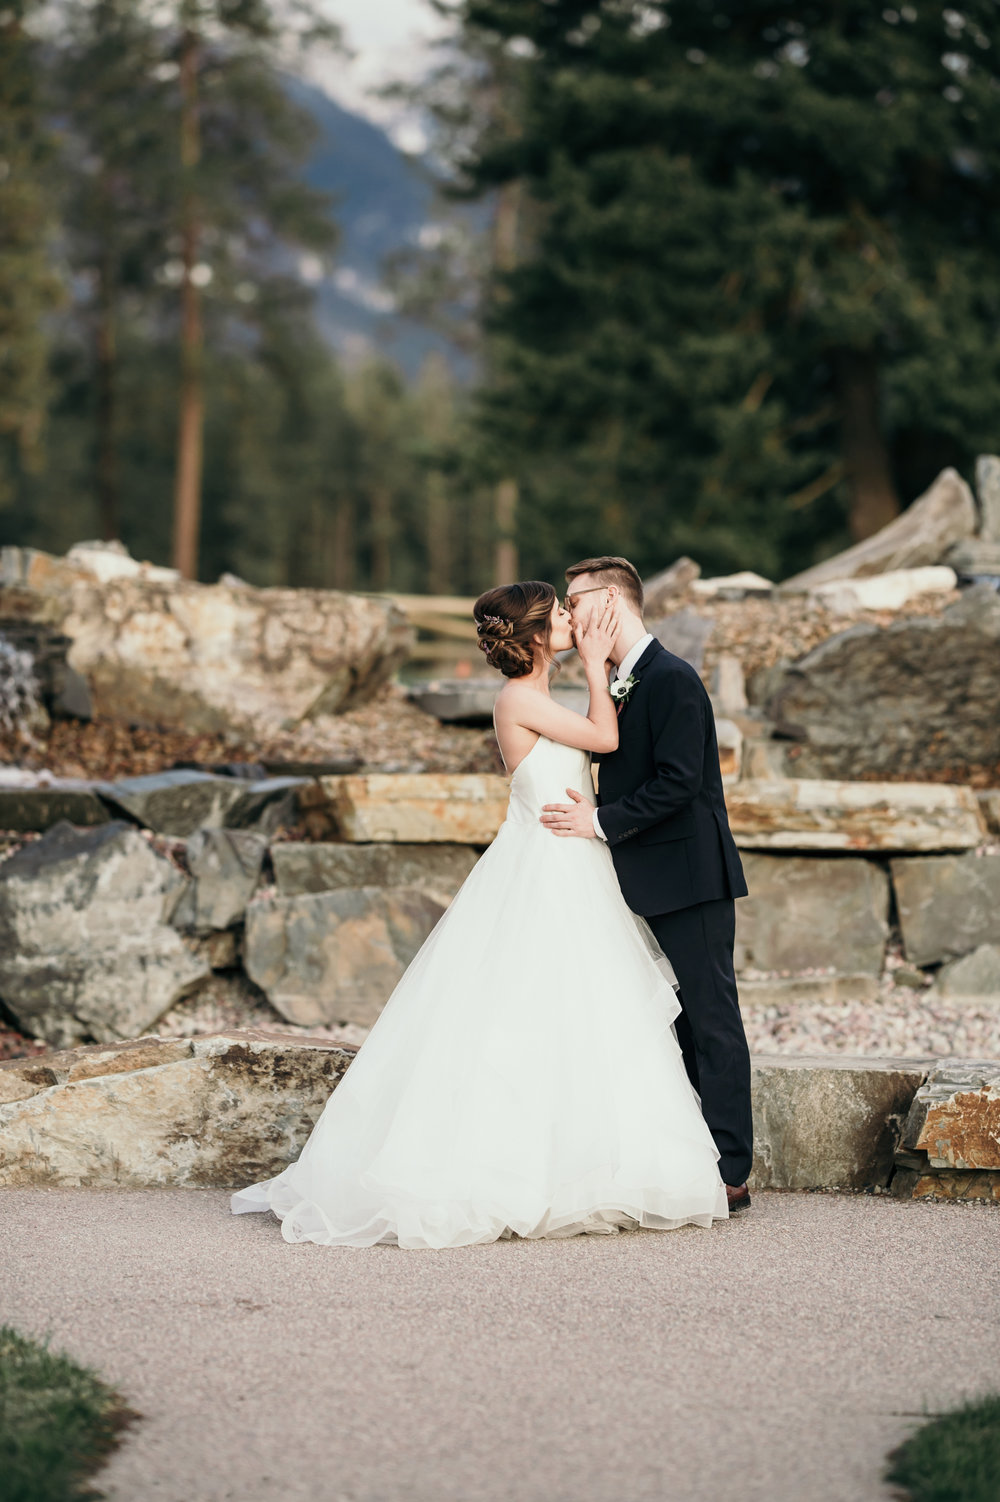 Jewel Tone Wedding Styled Shoot_Silver Knot_Montana Wedding Planner_Montana Wedding Photographer_Montana Wedding Videography_Honeybee Weddings-1406.jpg